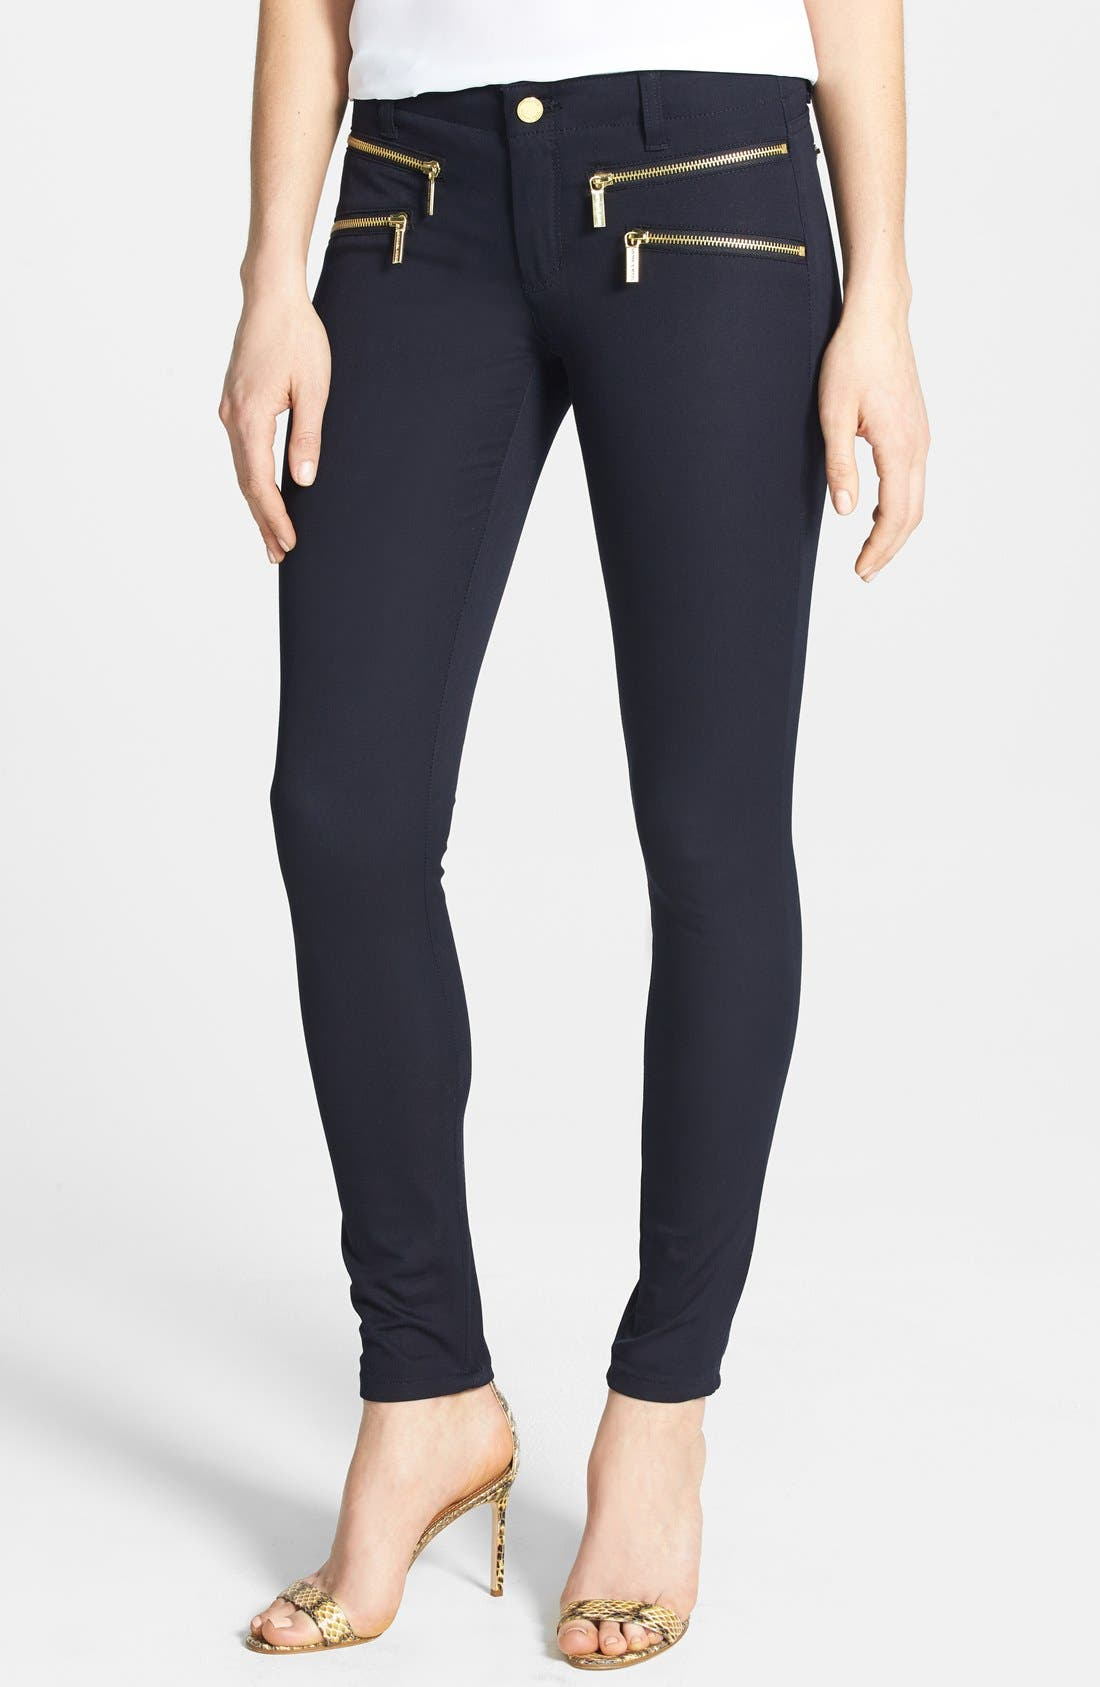 Alternate Image 1 Selected - MICHAEL Michael Kors 'Rocker' Navy Skinny Pants